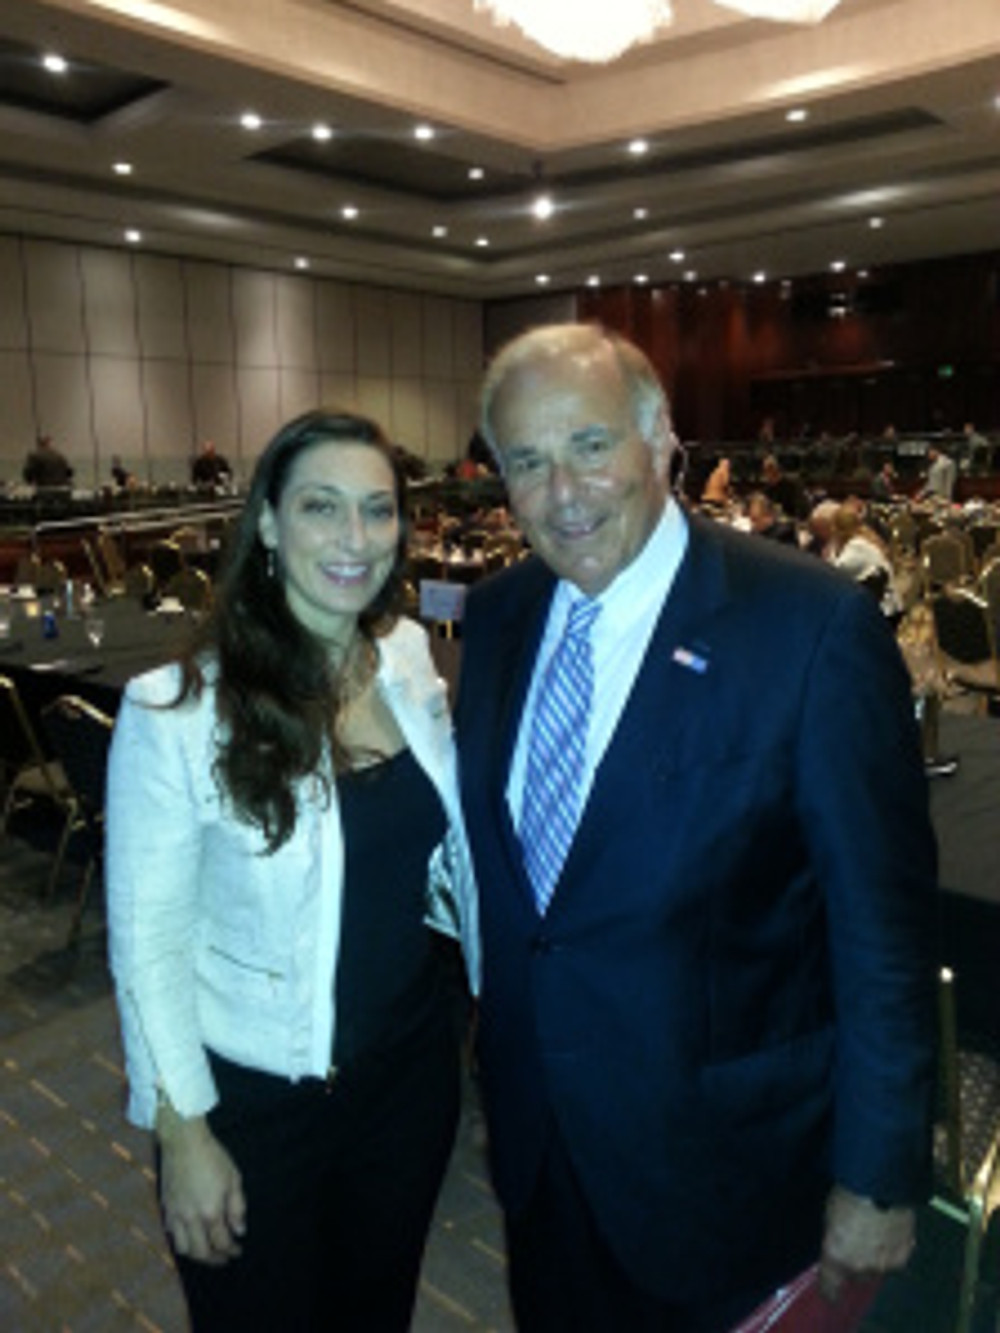 Jennifer Grady, Esq. with Former Pennsylvania Governor Ed Rendell.